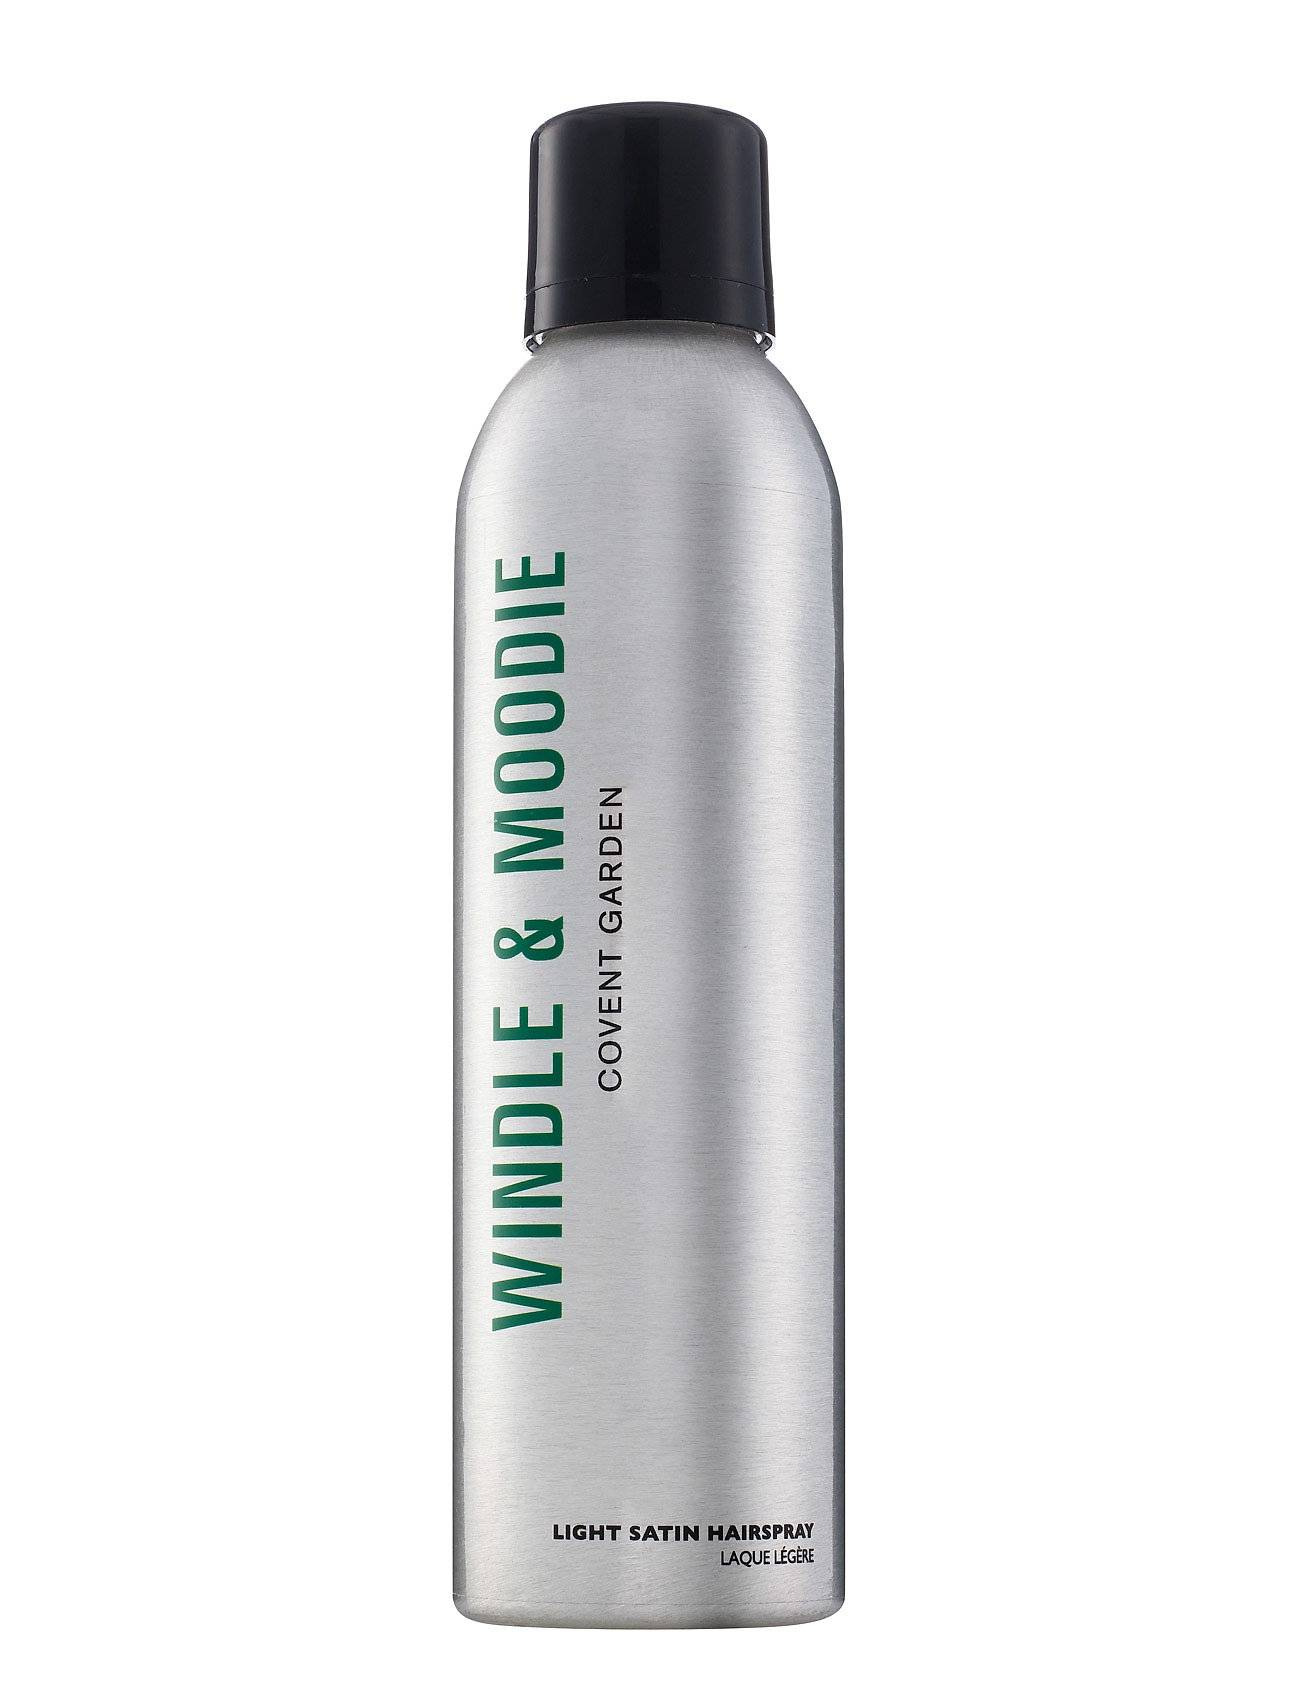 Windle & Moodie Light Satin Hairspray